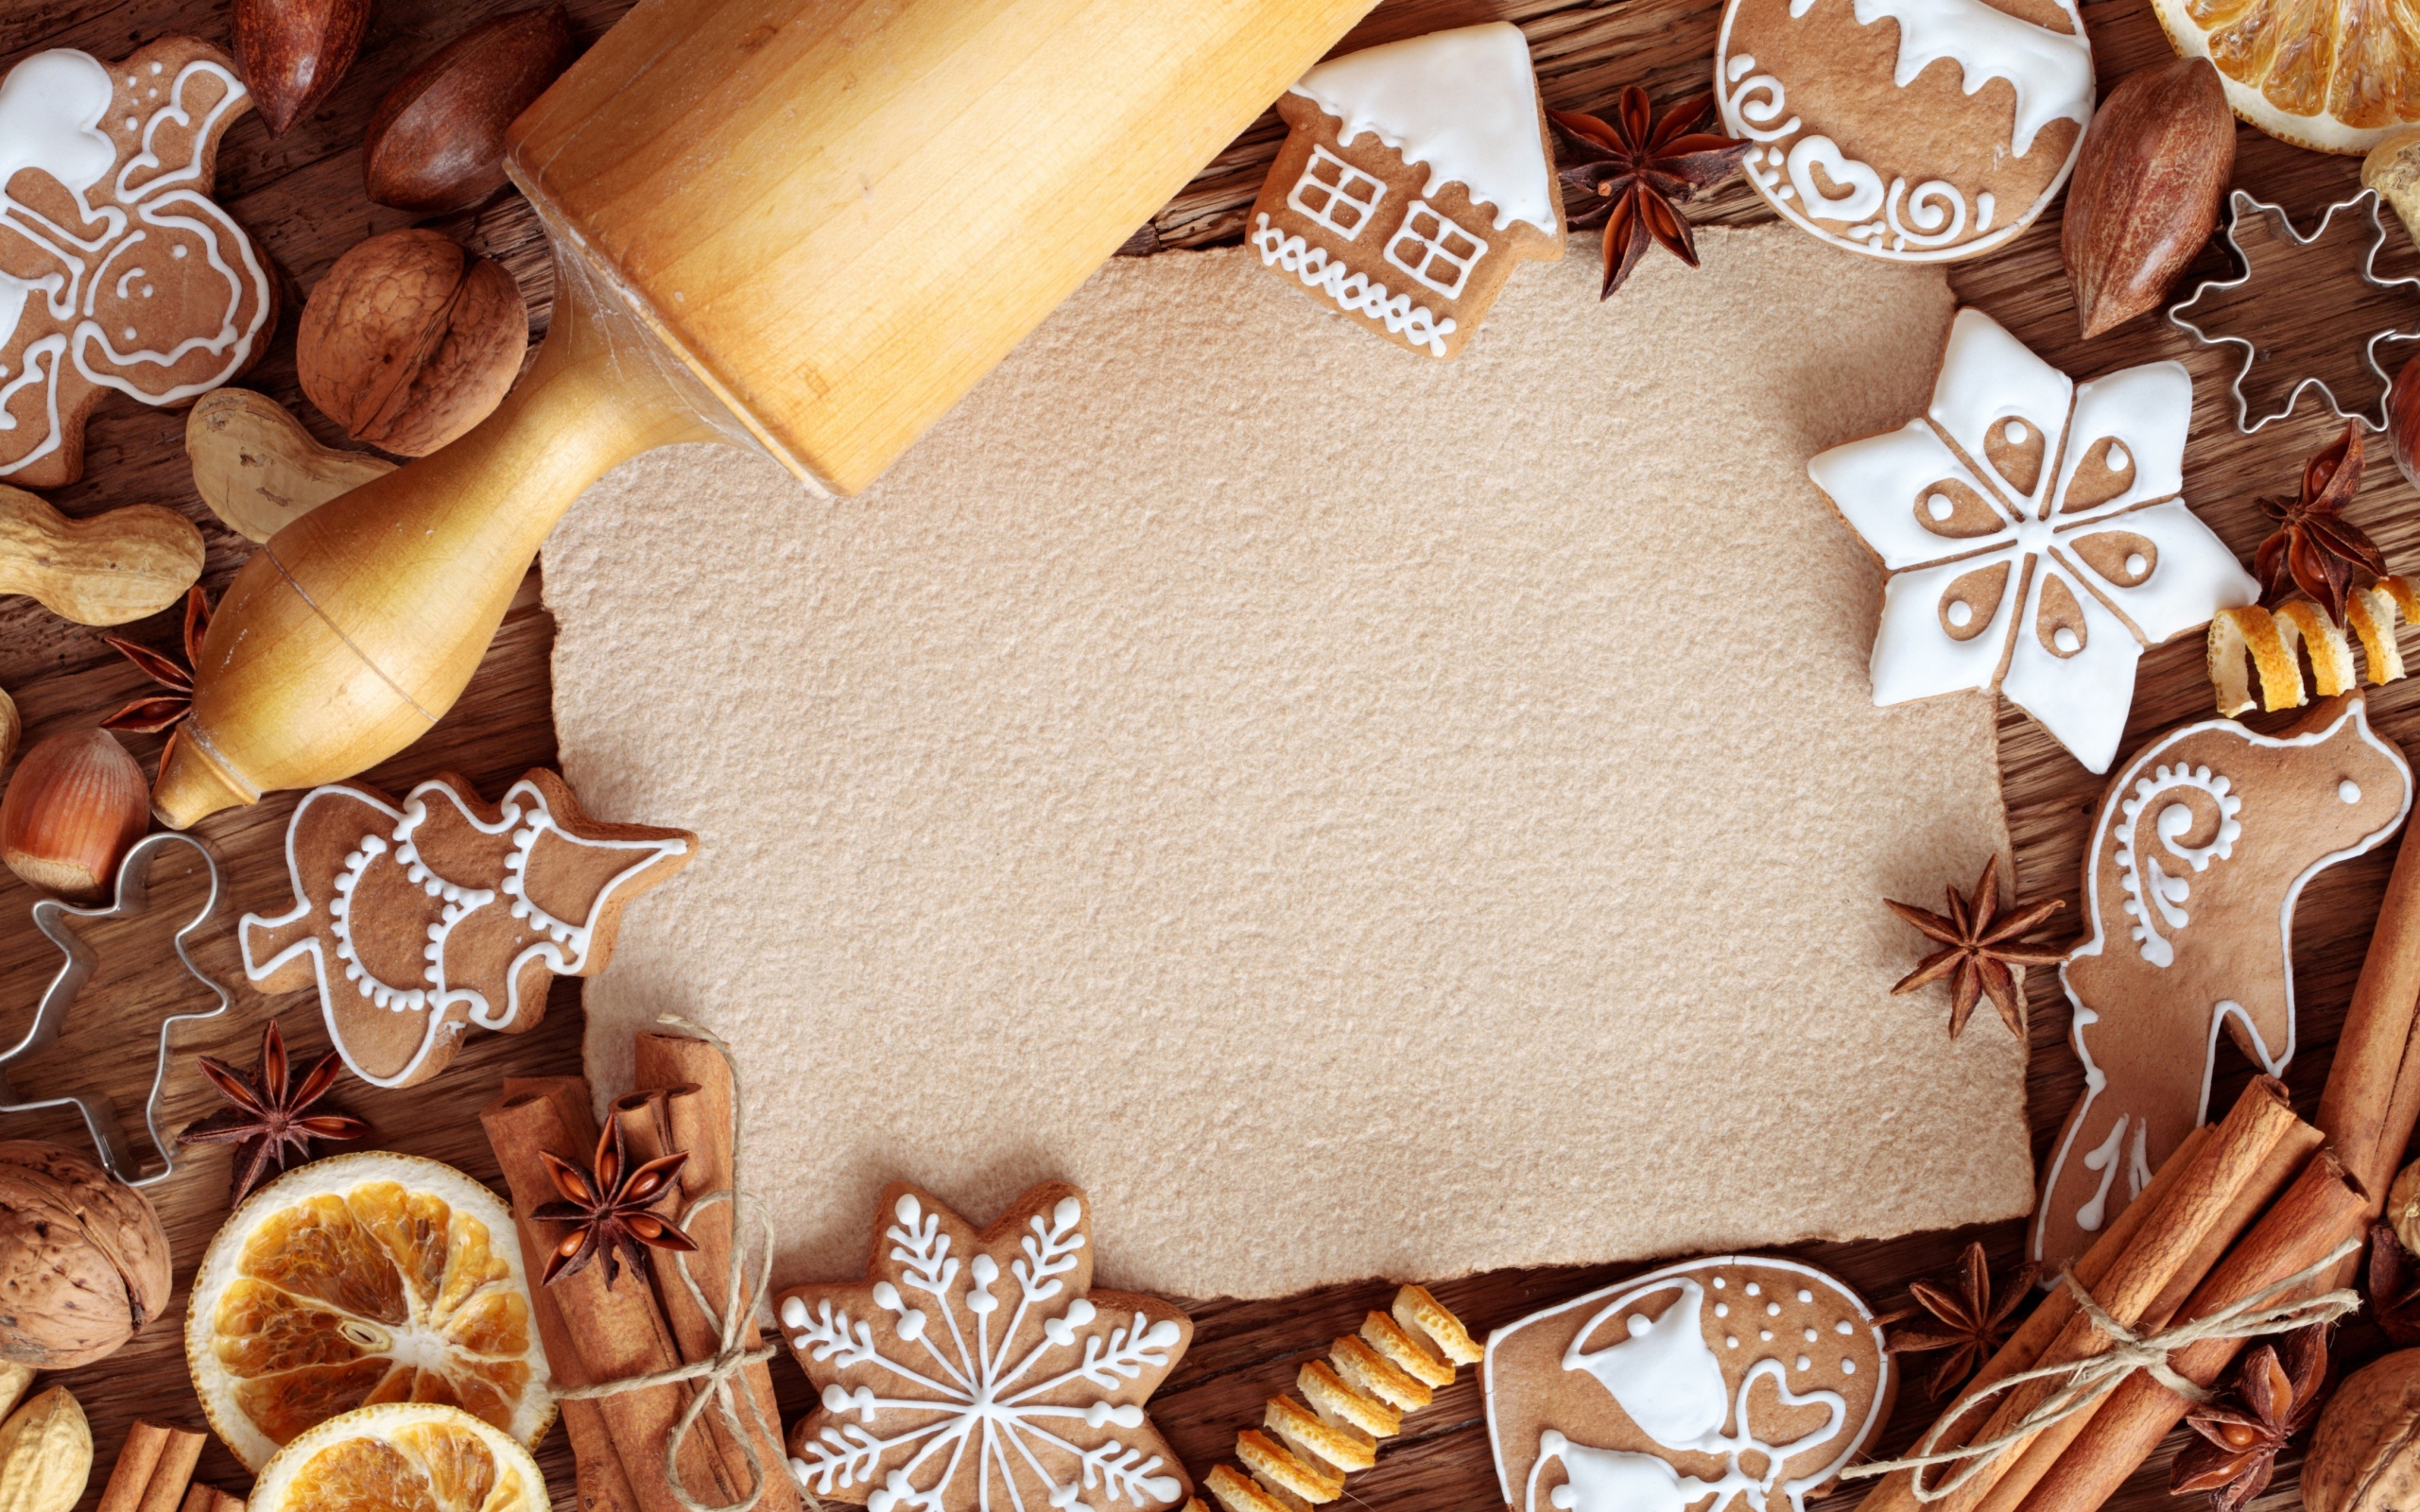 Preparation of Christmas cookies Desktop wallpapers 2560x1600 2560x1600